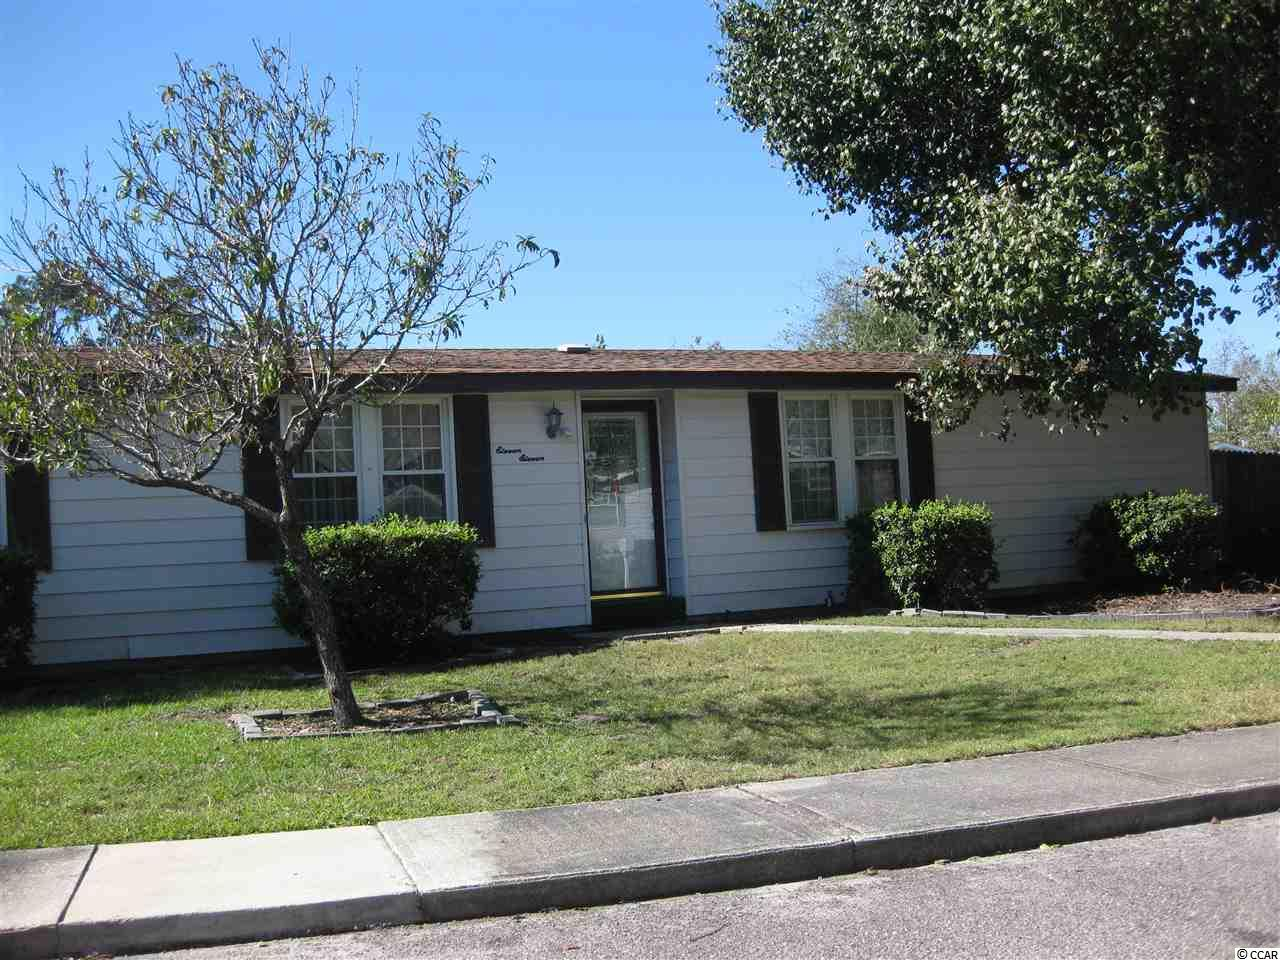 Great community just a half mile to the beach and close to all shopping and restaurants.  This 3 bedroom 2 bath home has a separate dining room, screened porch in rear and fenced in yard.  Enjoy the community club house, swimming pool and tennis courts.